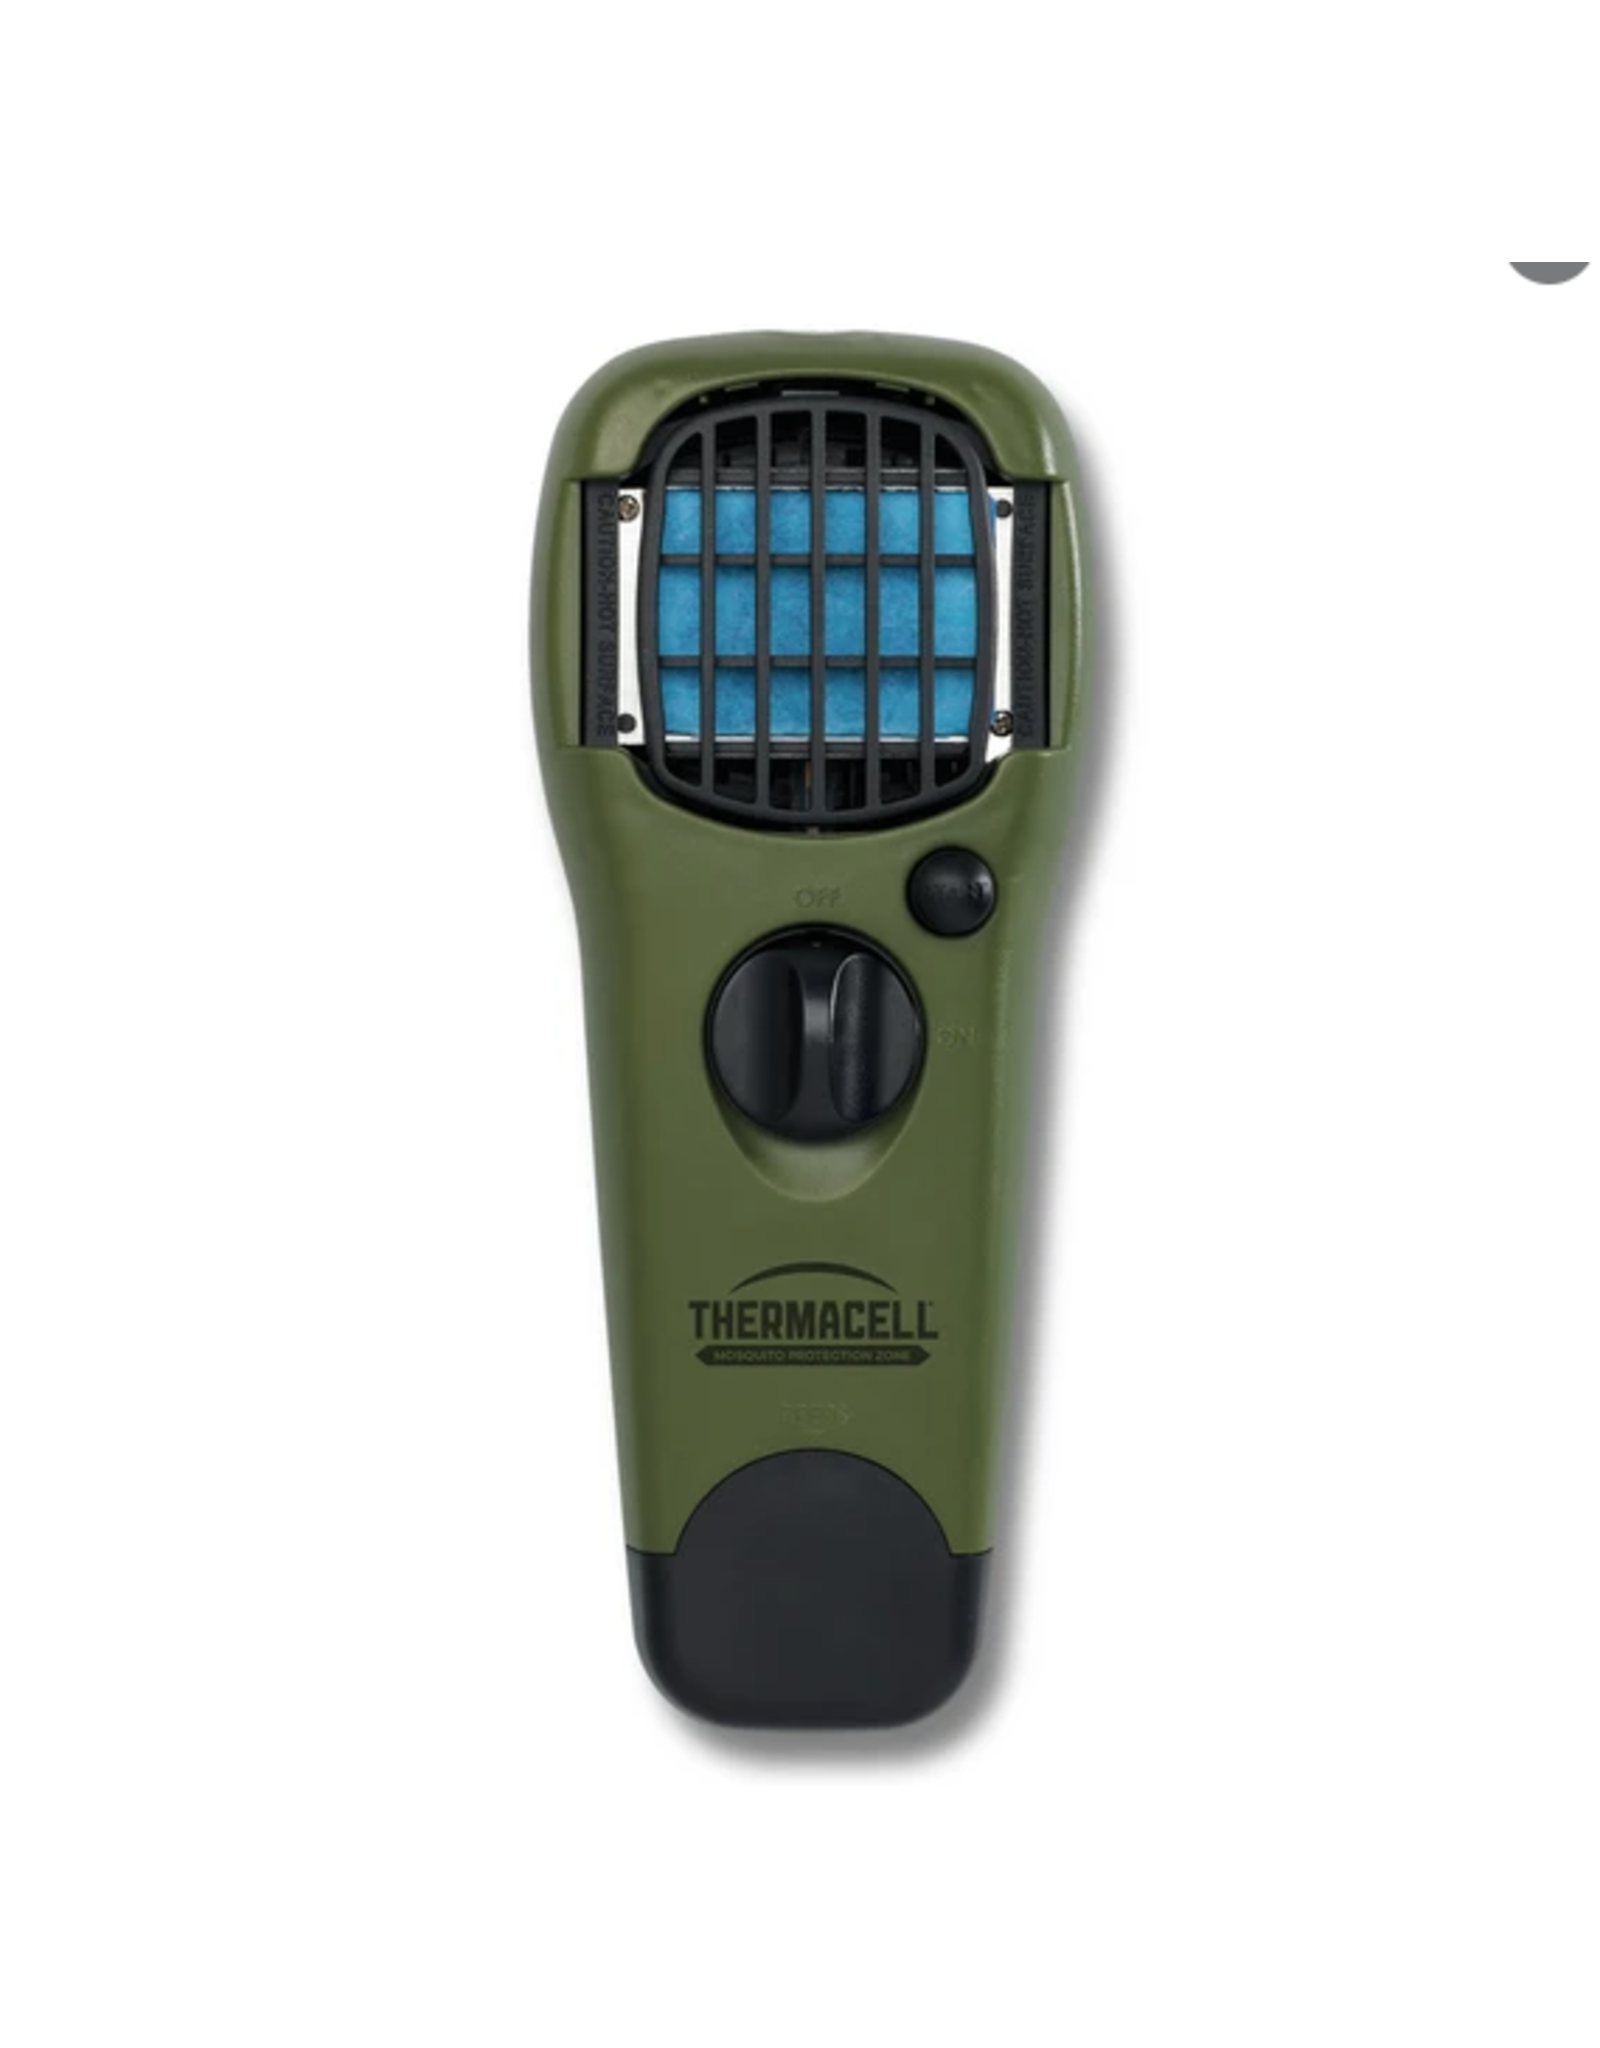 Thermacell Thermacell Mosquito Area Repellent